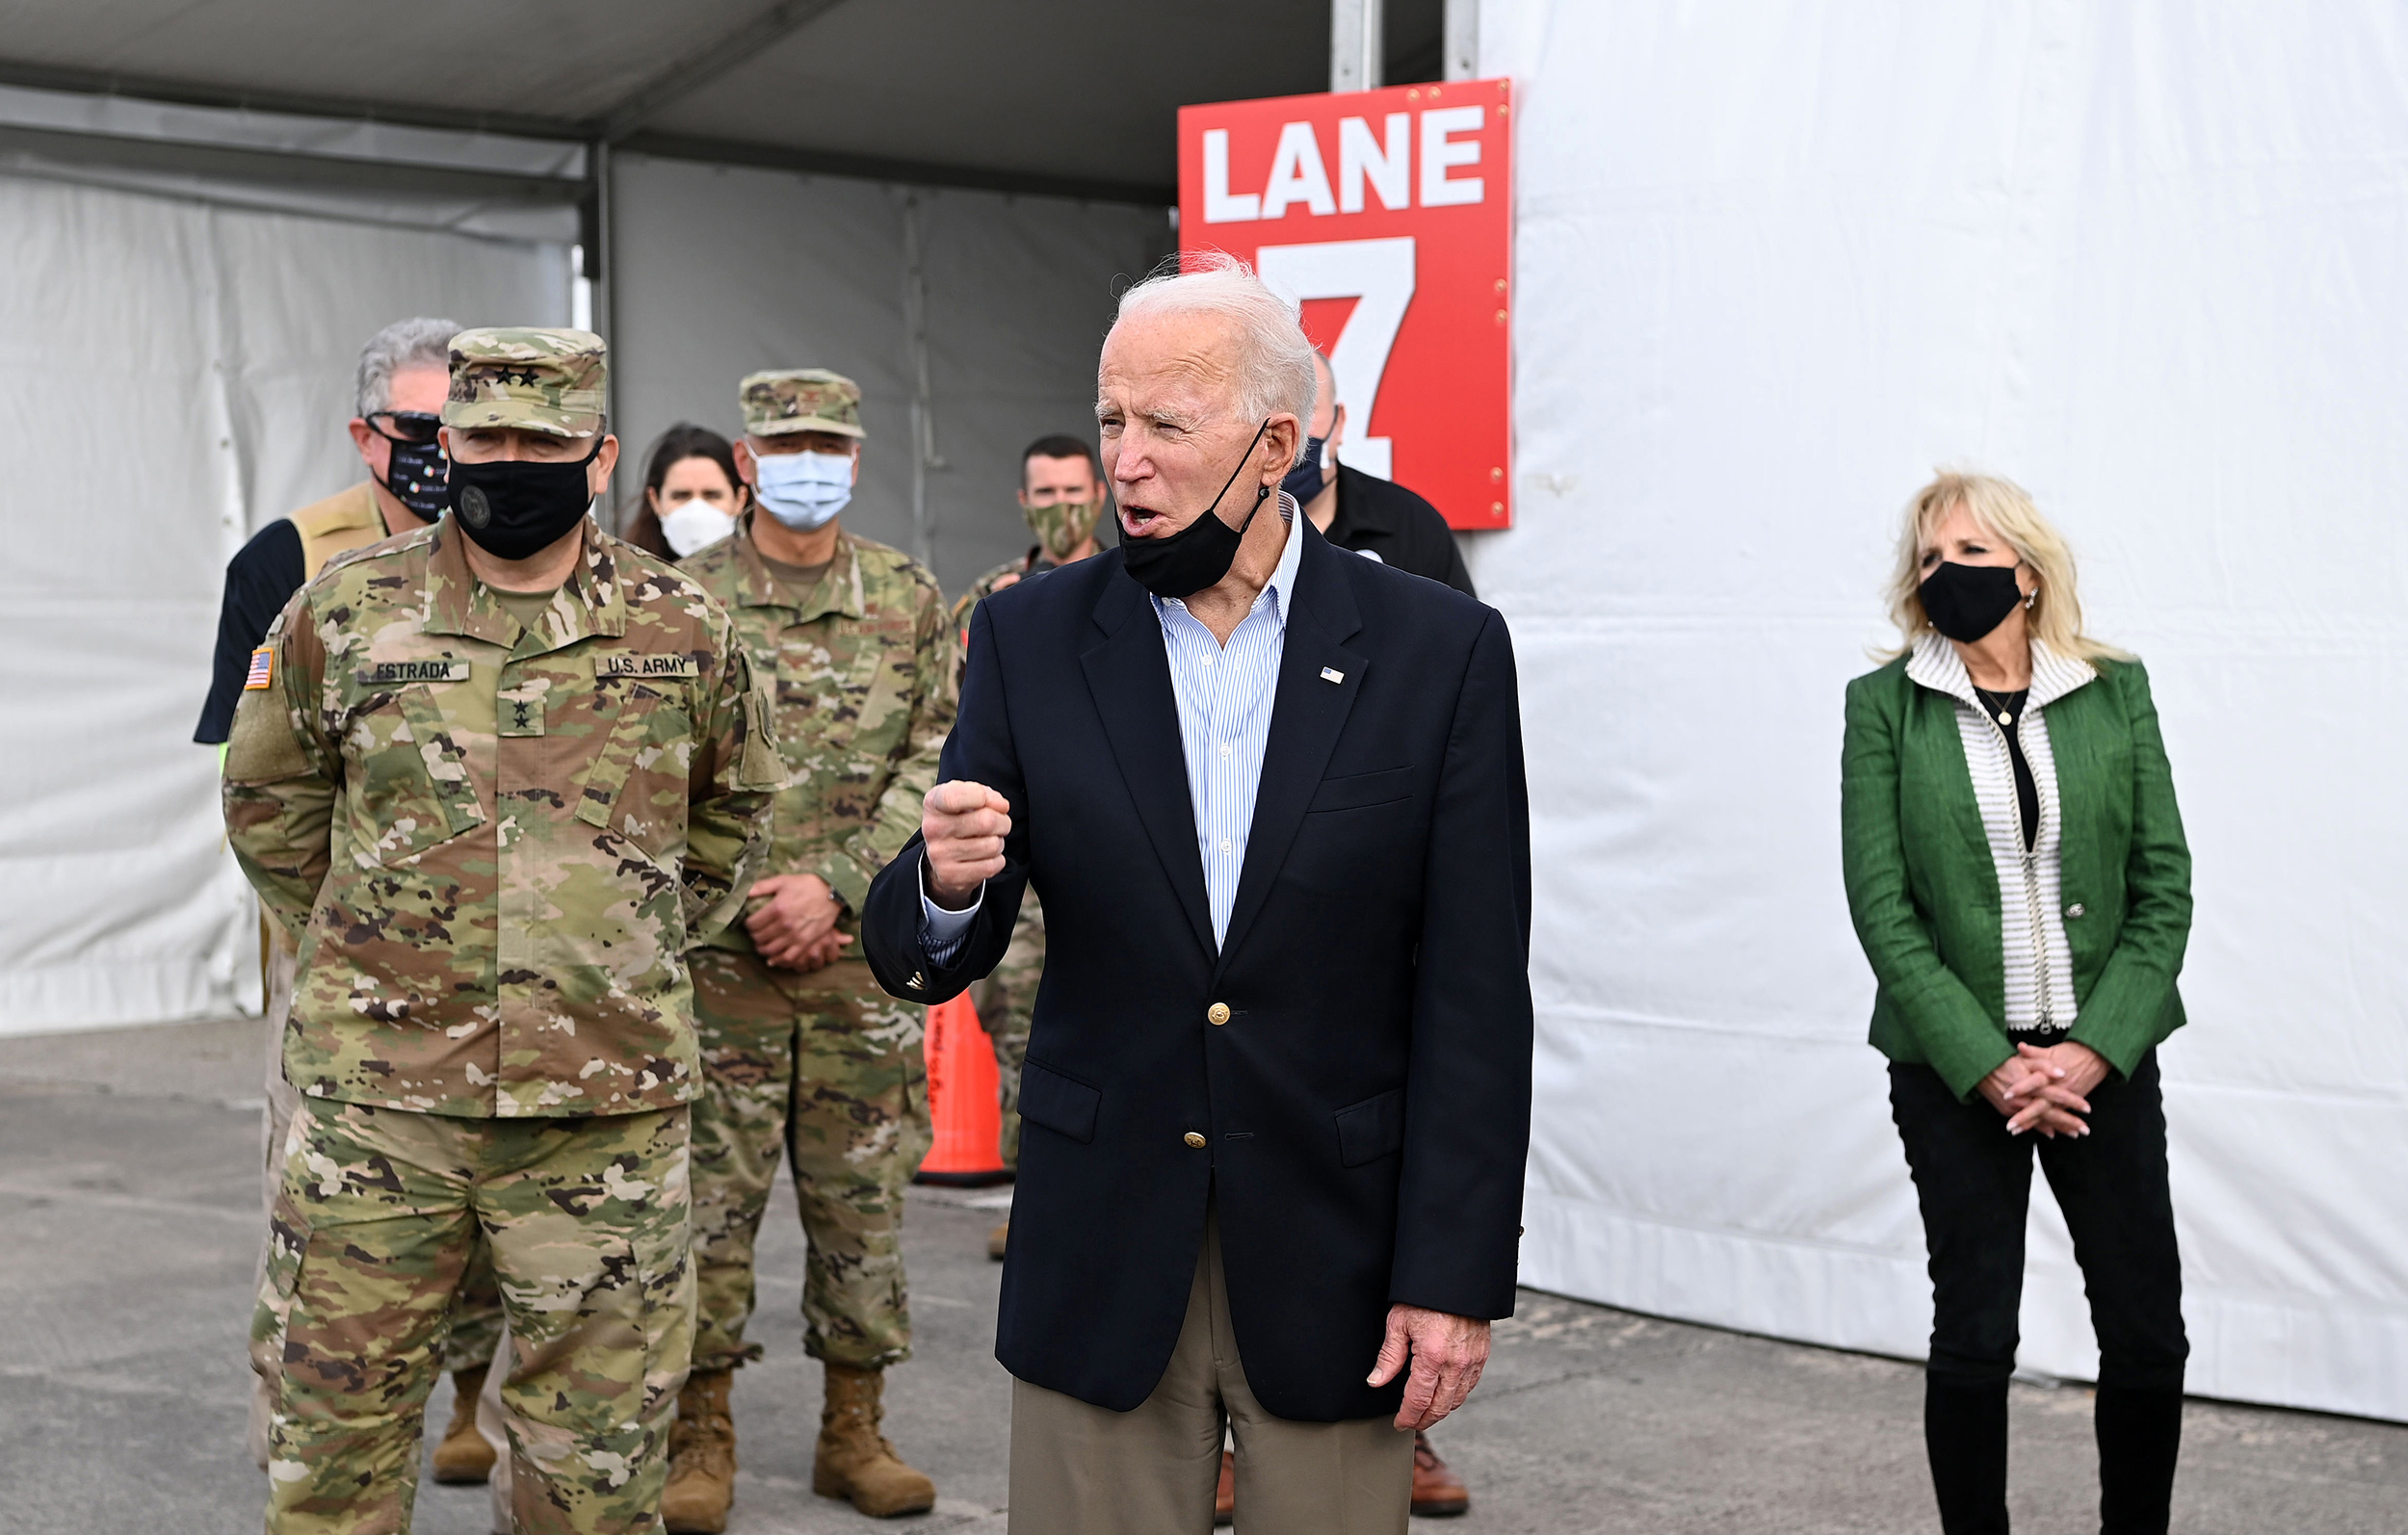 Biden's message to Iran with missile strikes: 'You can't act with impunity, be careful'